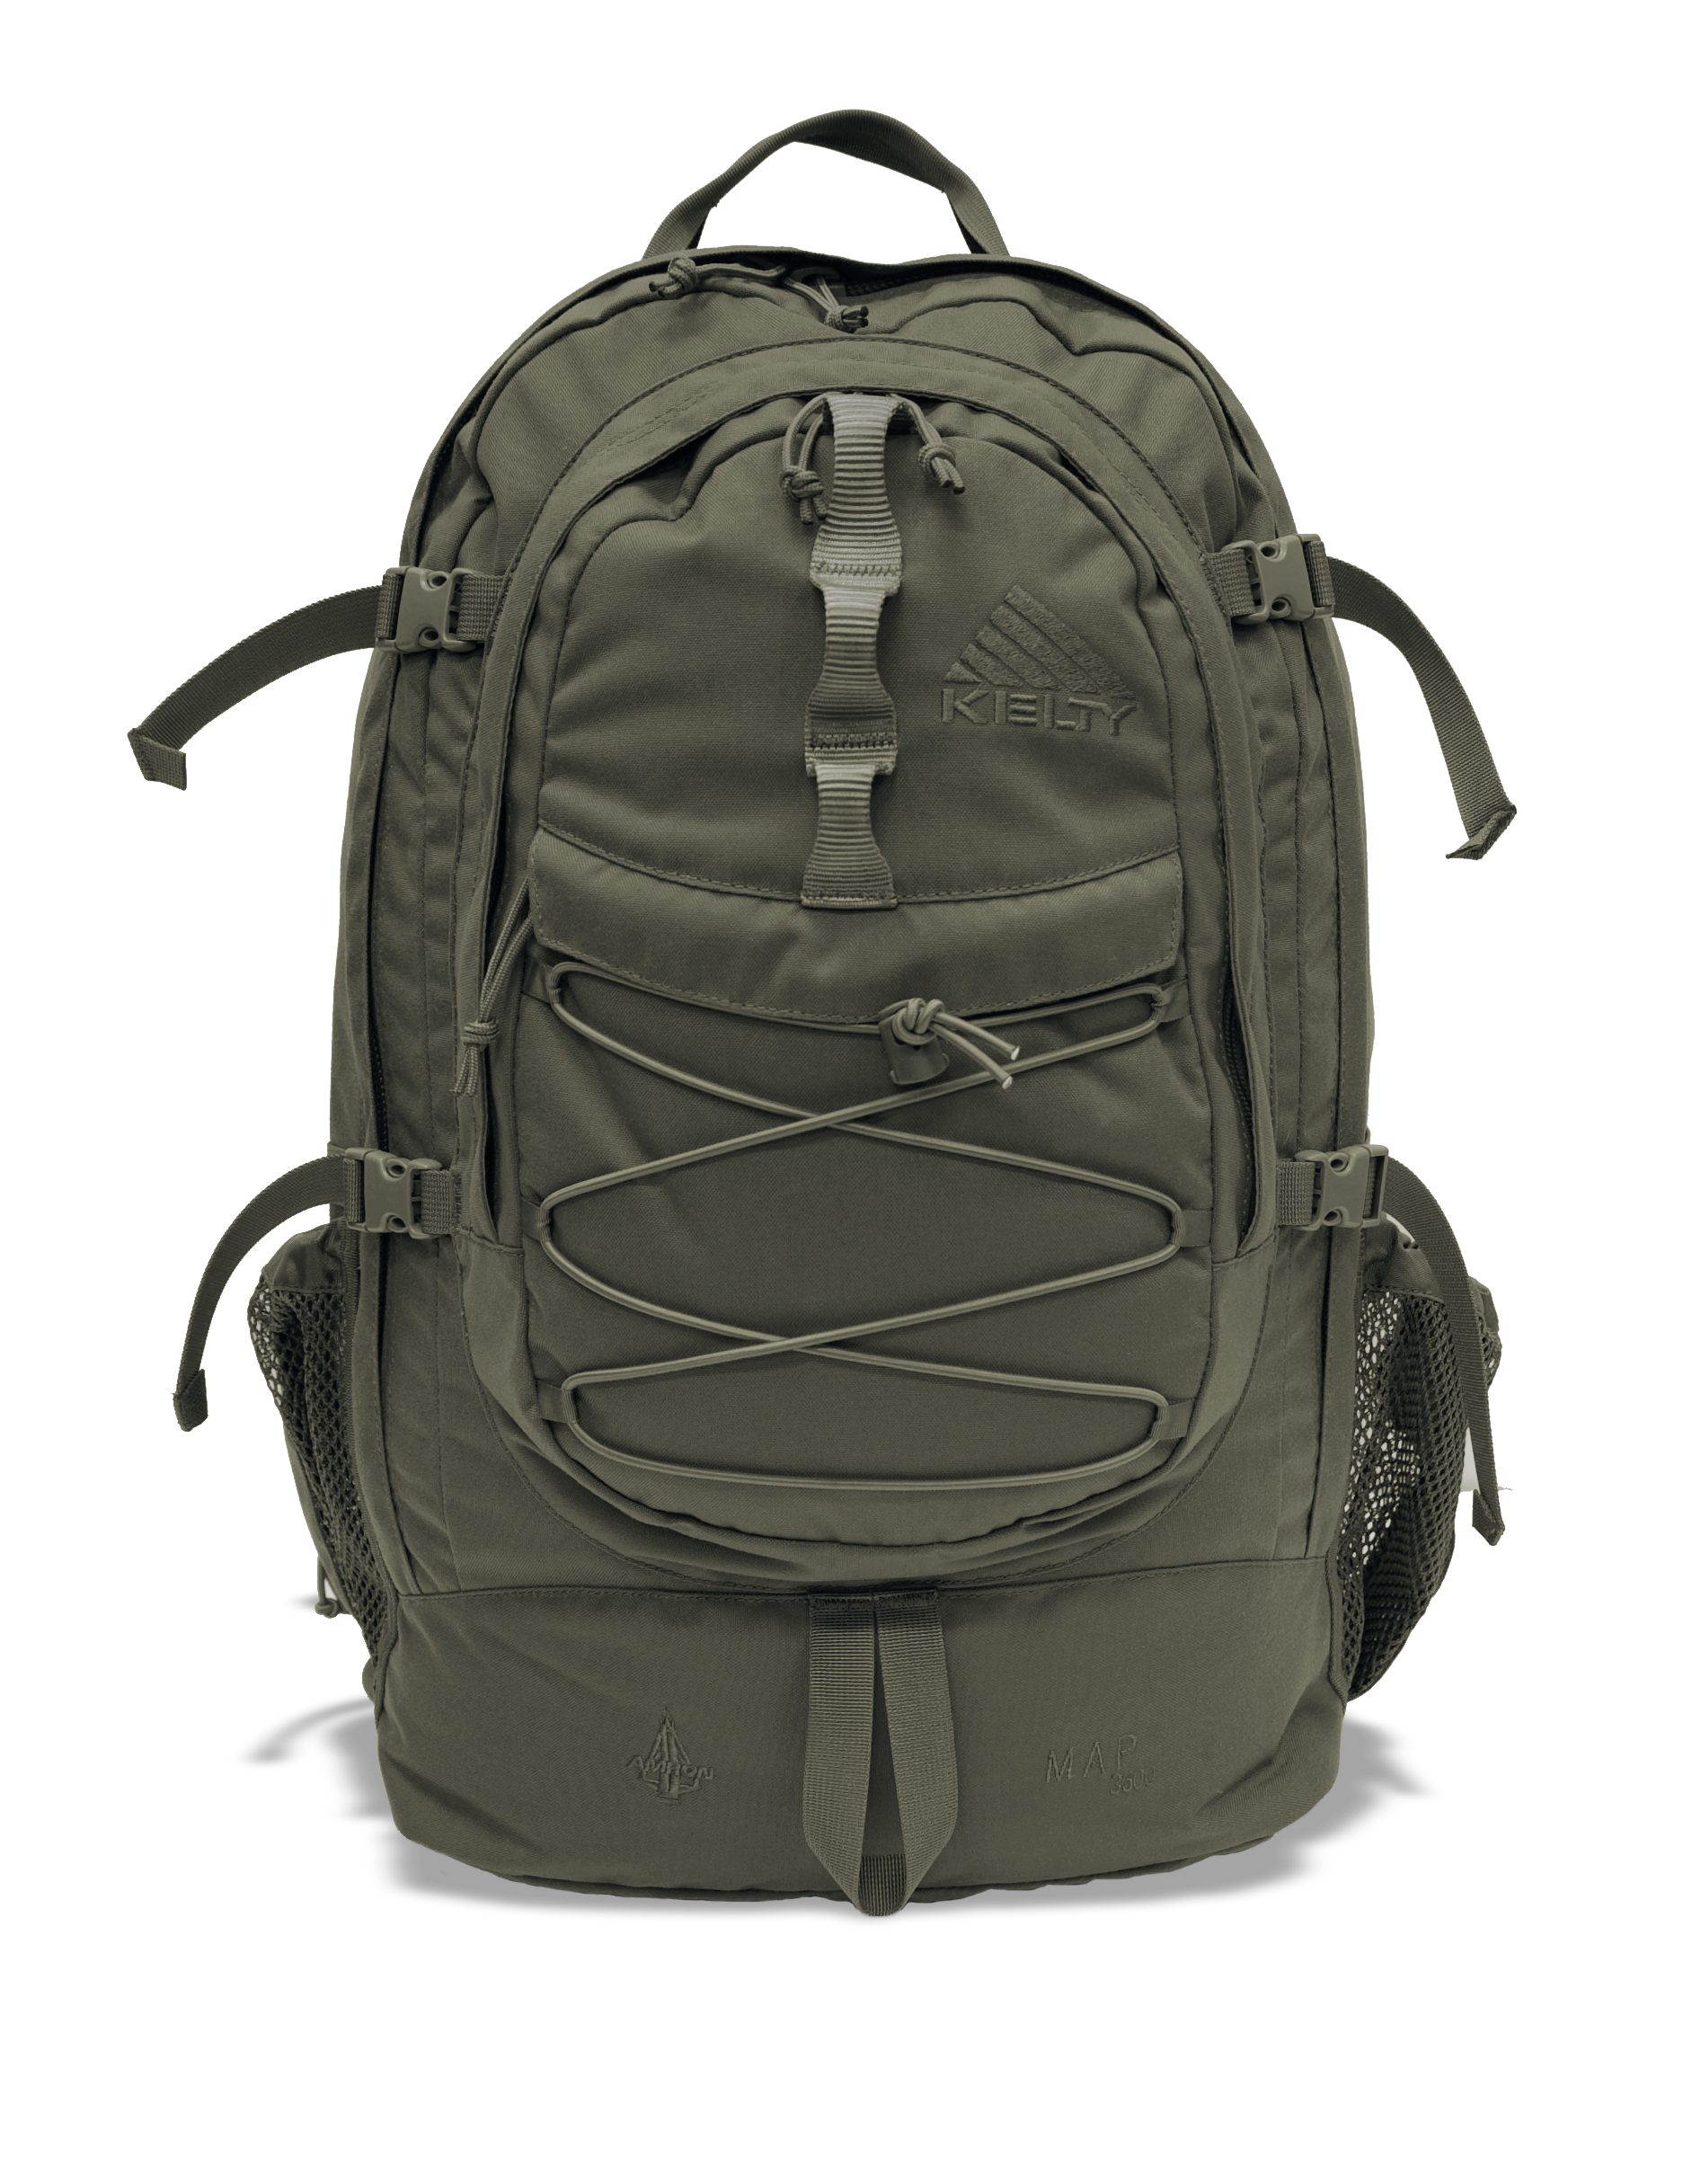 Kelty MAP 3500 3-Day Assault Pack